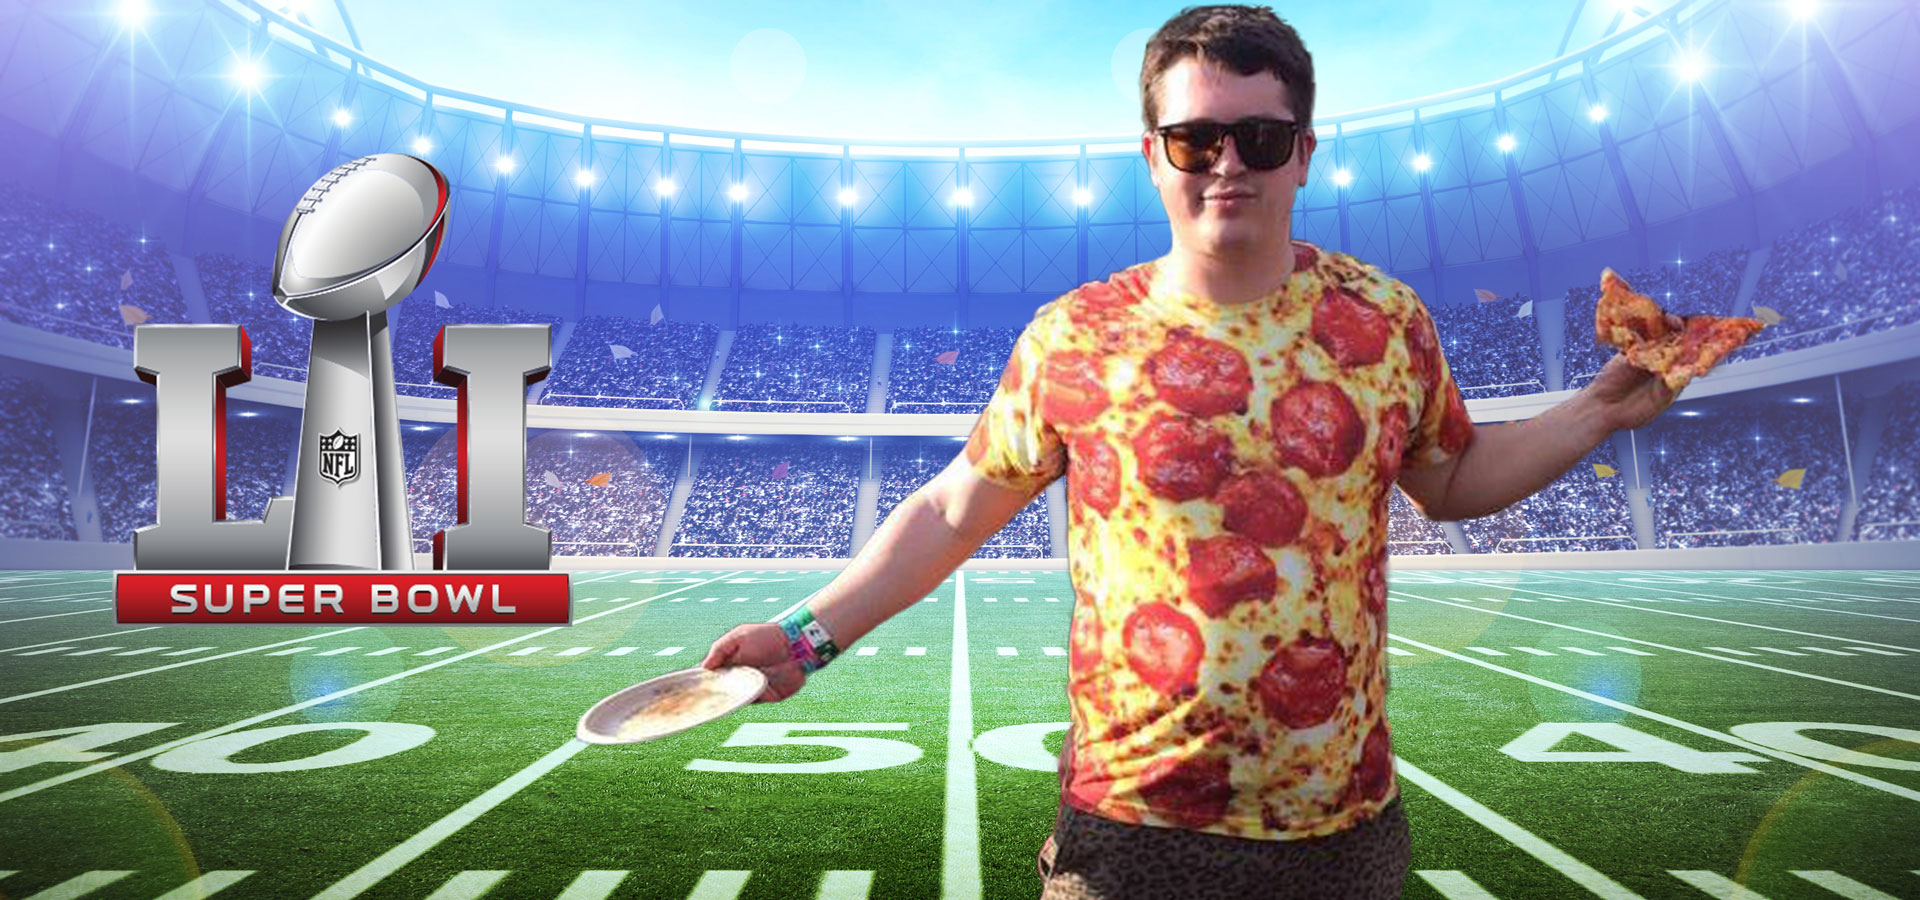 pizza-party-web-banner.jpg